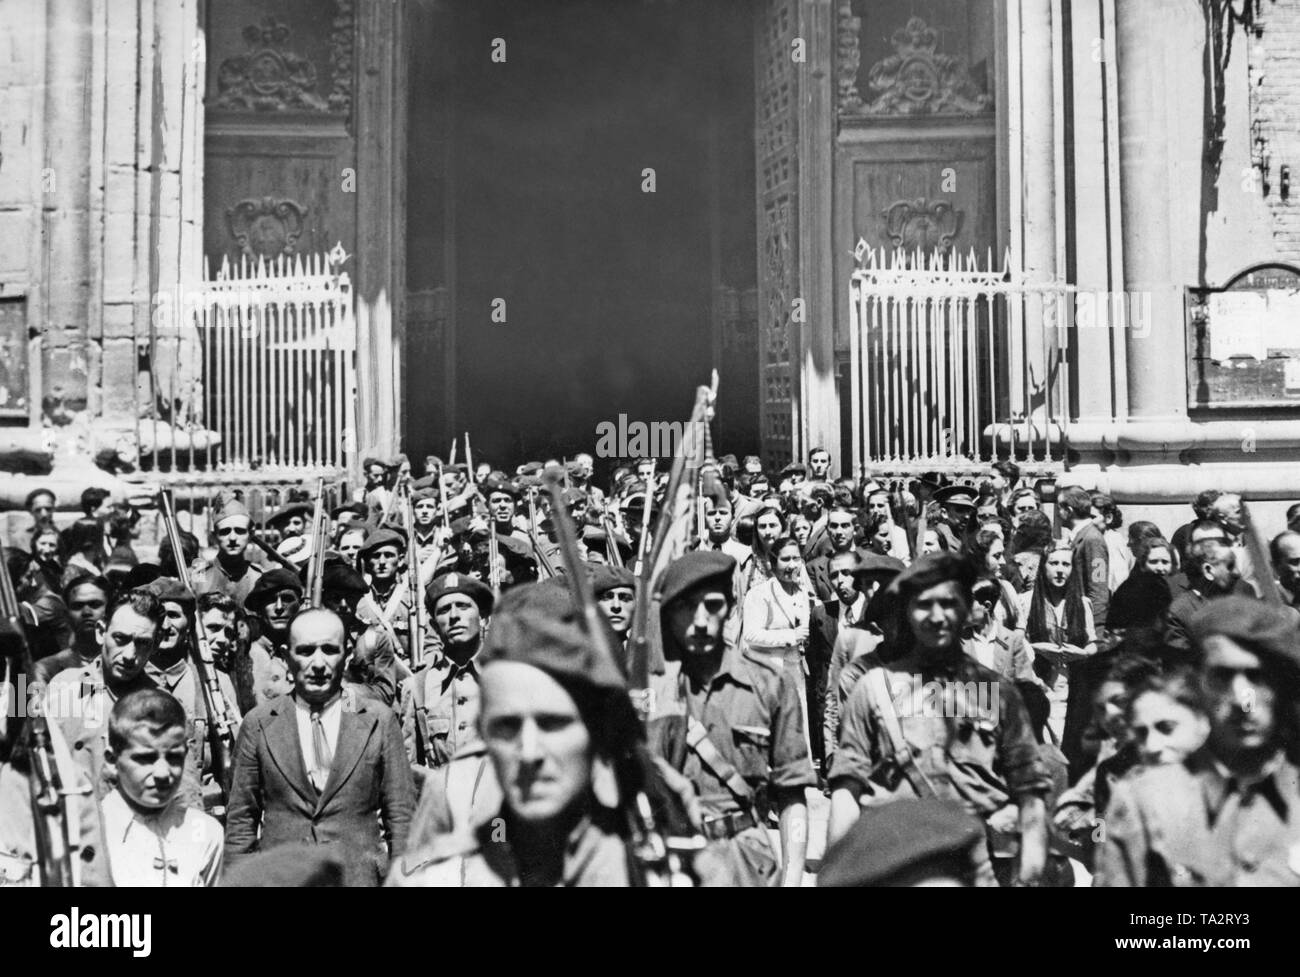 Volunteer Spanish national supporters (armed, in uniform or civilian clothes with banners) leave a service in the Cathedral of Zaragoza (Catedral-Basilica de Nuestra Senora del Pilar de Zaragoza) through the main portal before their departure to the front. The Republicans tried to invade Zaragoza in vain in July, 1936. A further offensive failed in September, 1937. Stock Photo